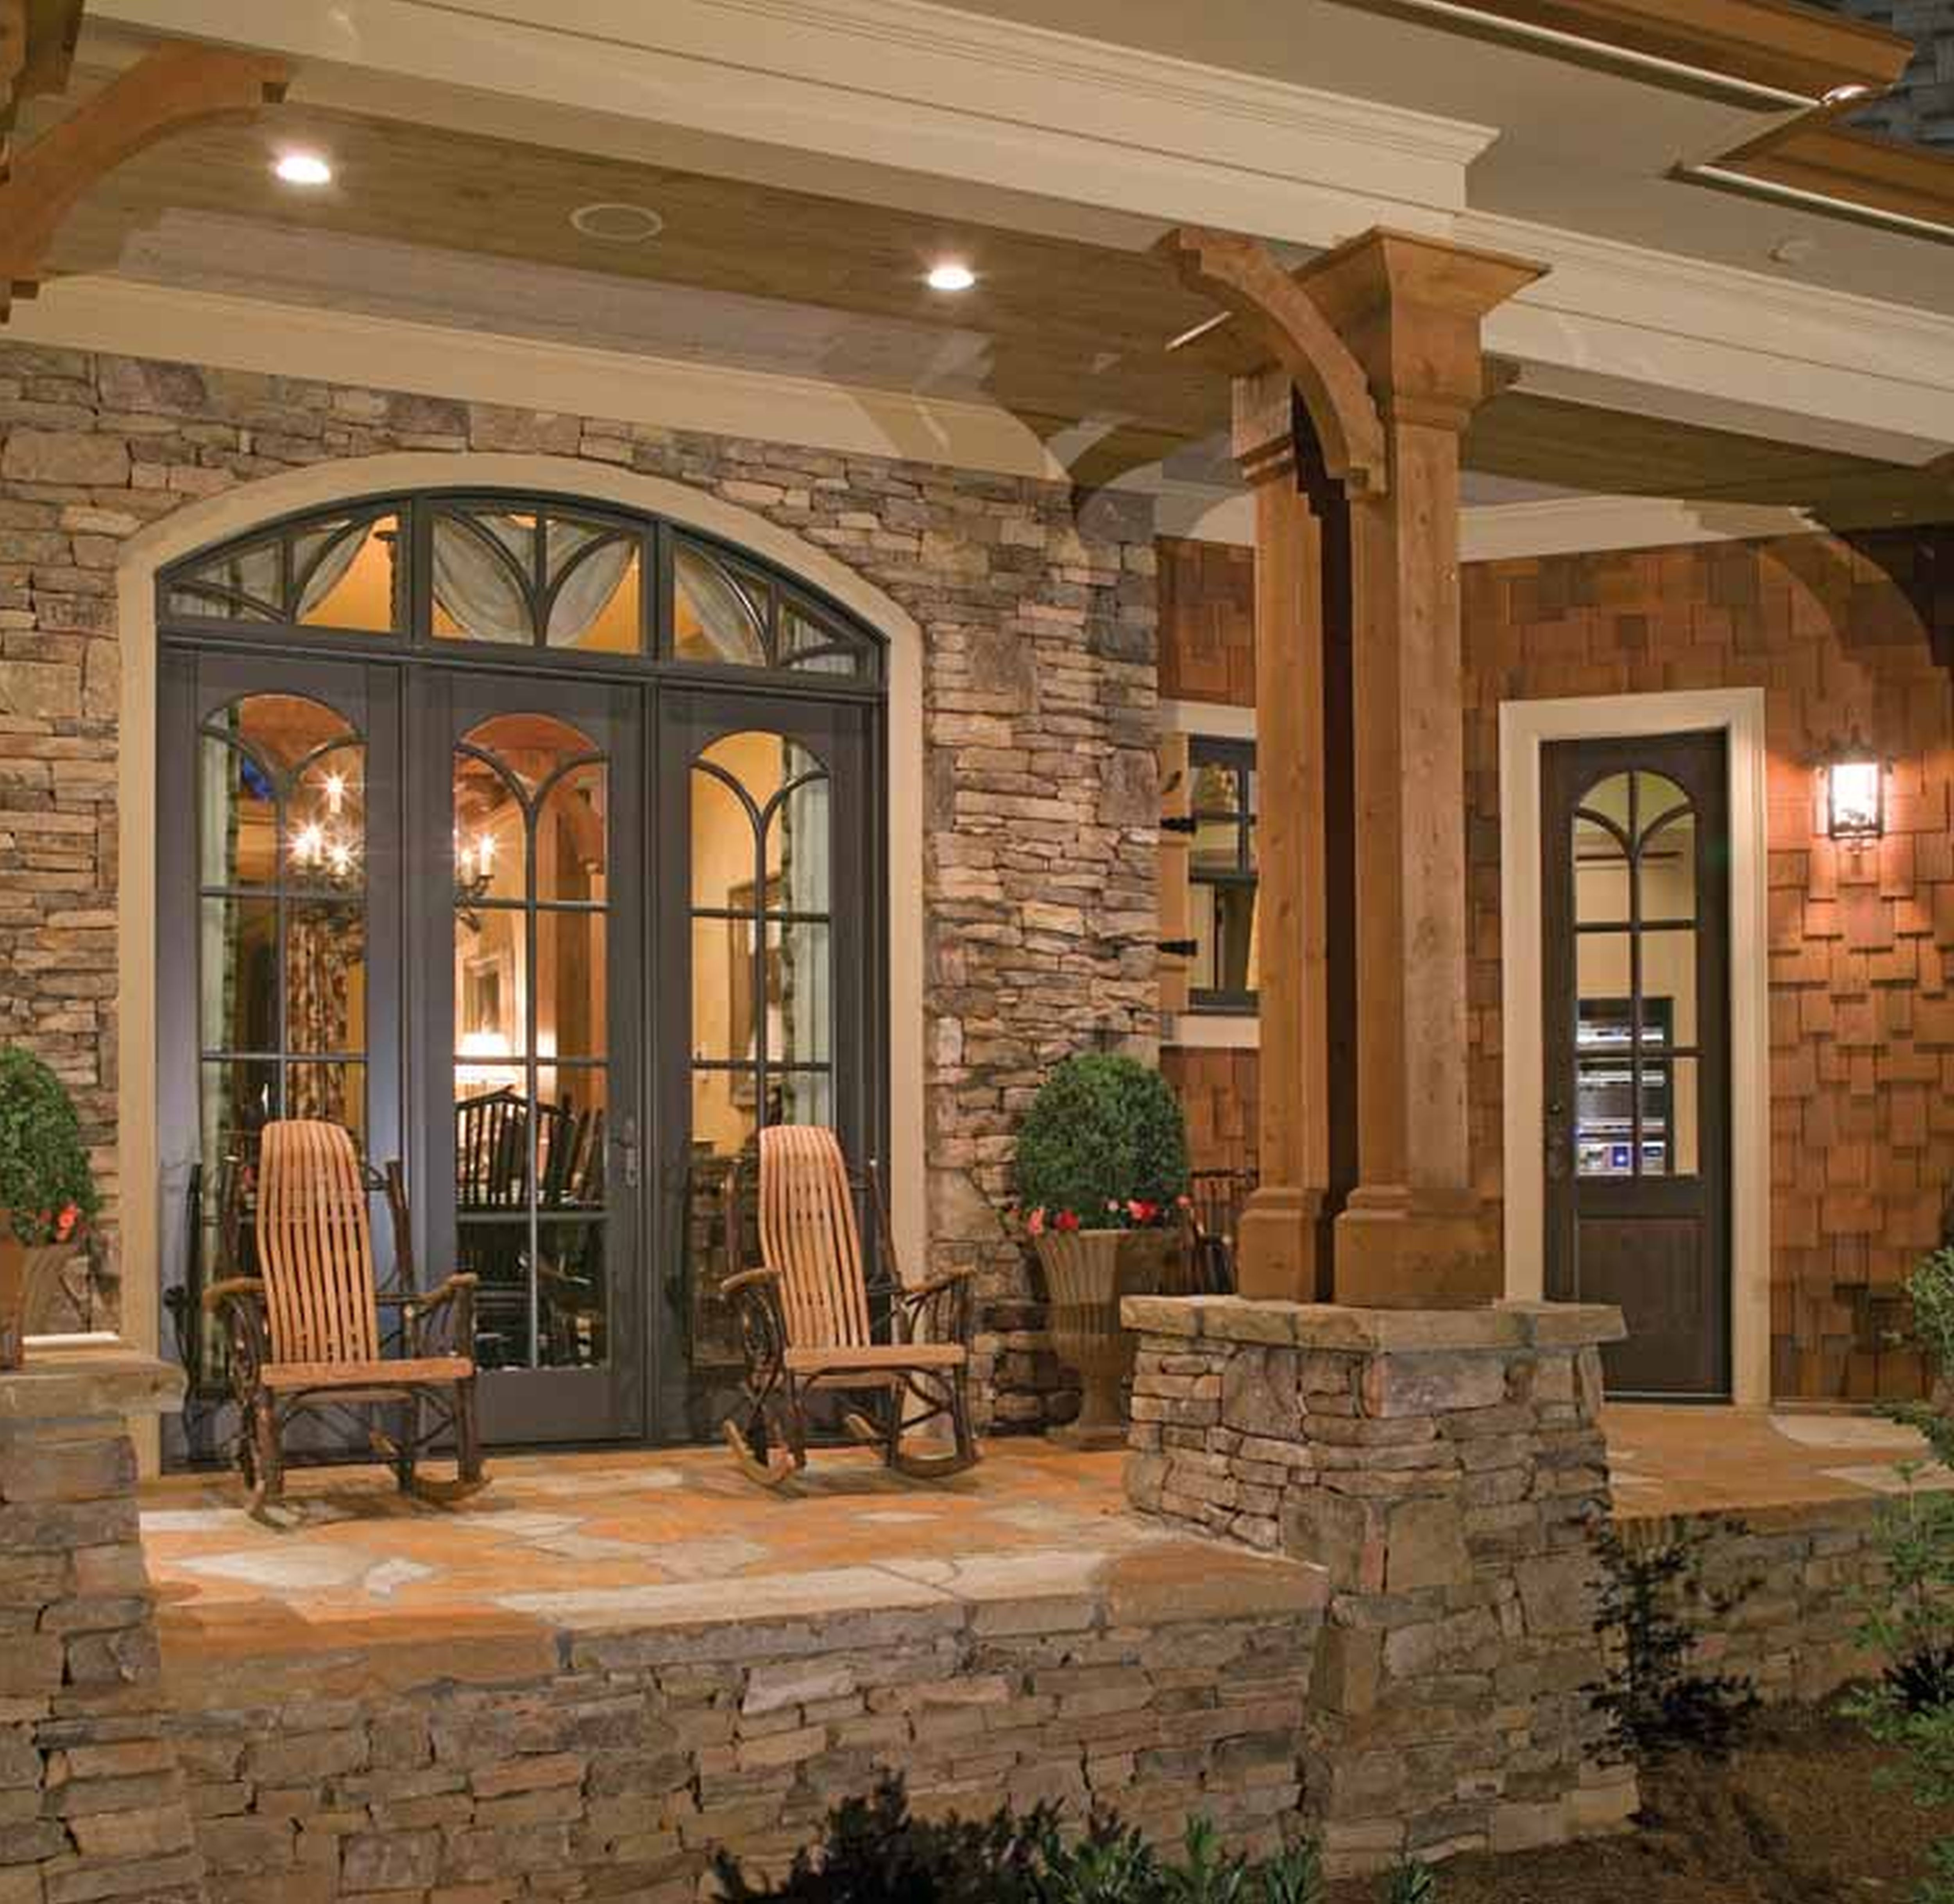 4154c09f248a9af78ba6ab2286494b0f Top Result 52 Best Of Craftsman Style Home Plans Photography 2017 Hdj5